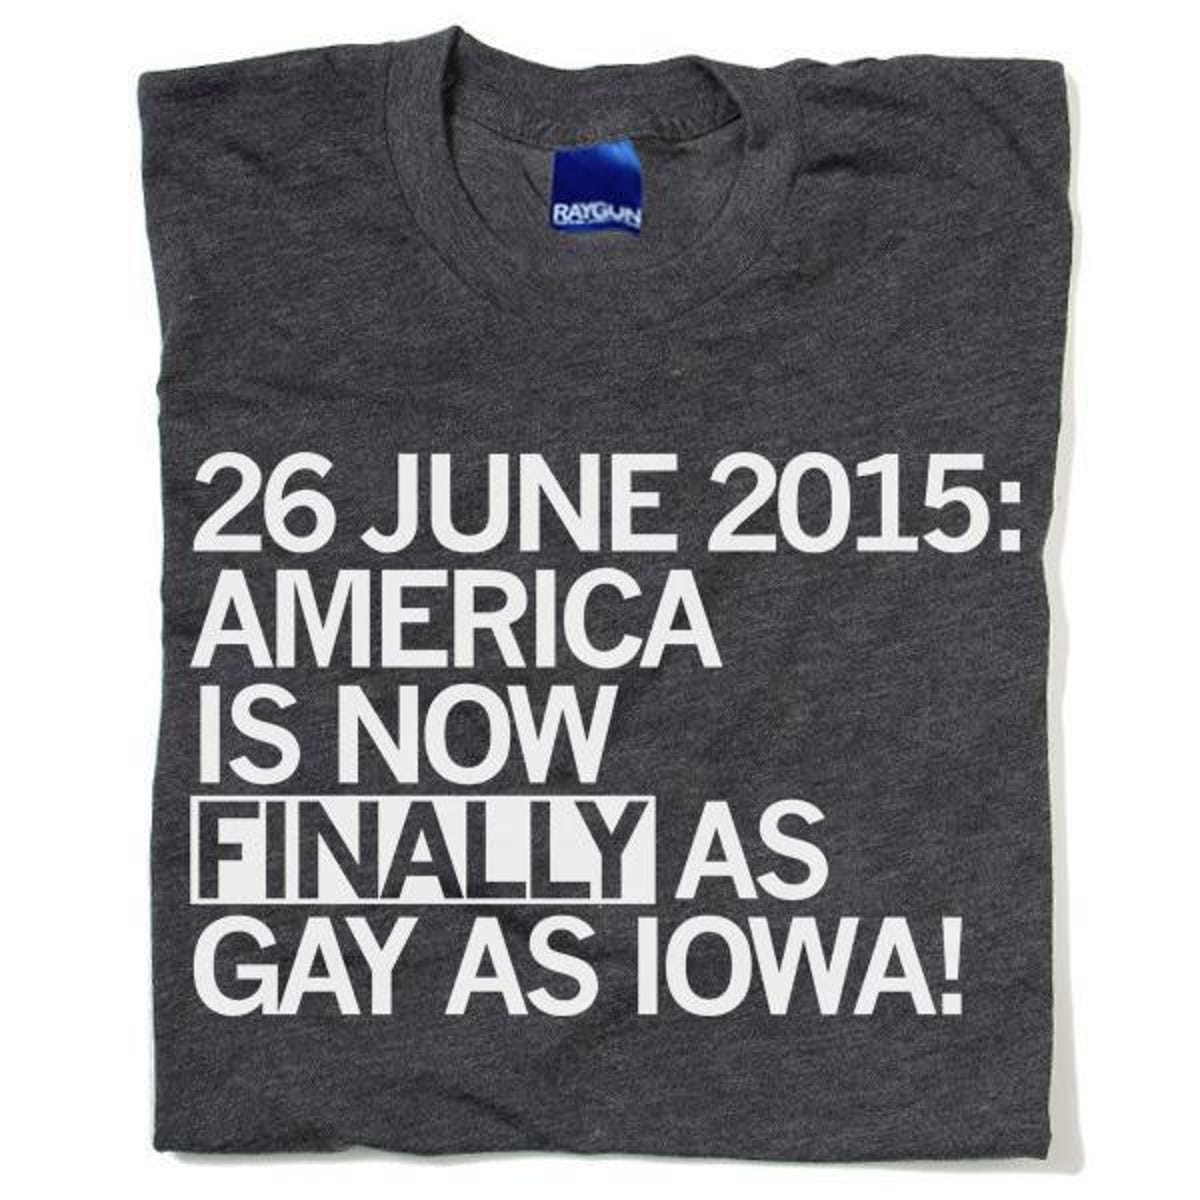 Raygun: America is 'finally' as gay as Iowa